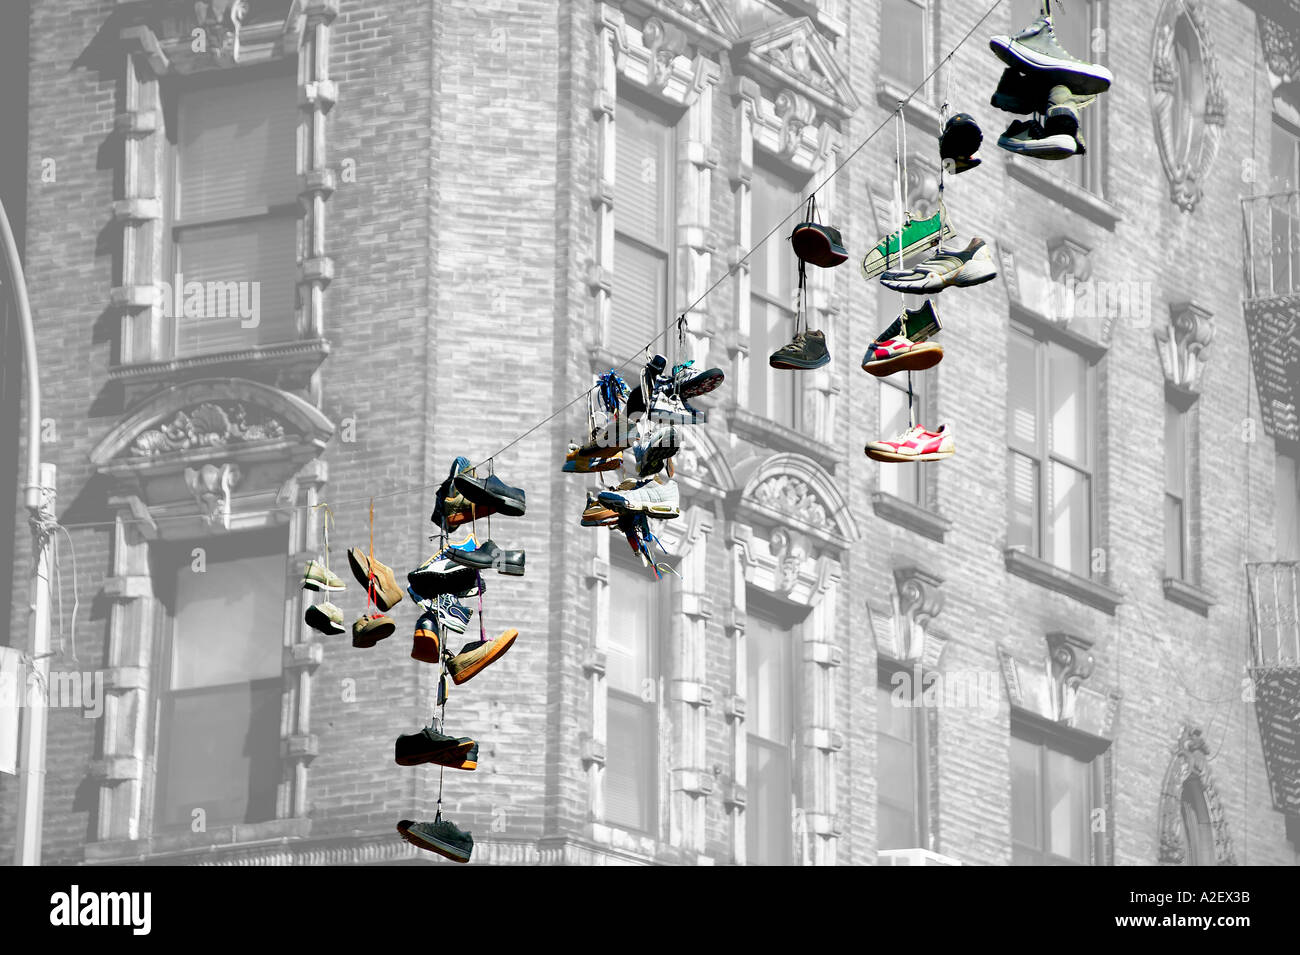 Sneakers Hanging Telephone Wire Stock Photos & Sneakers Hanging ...